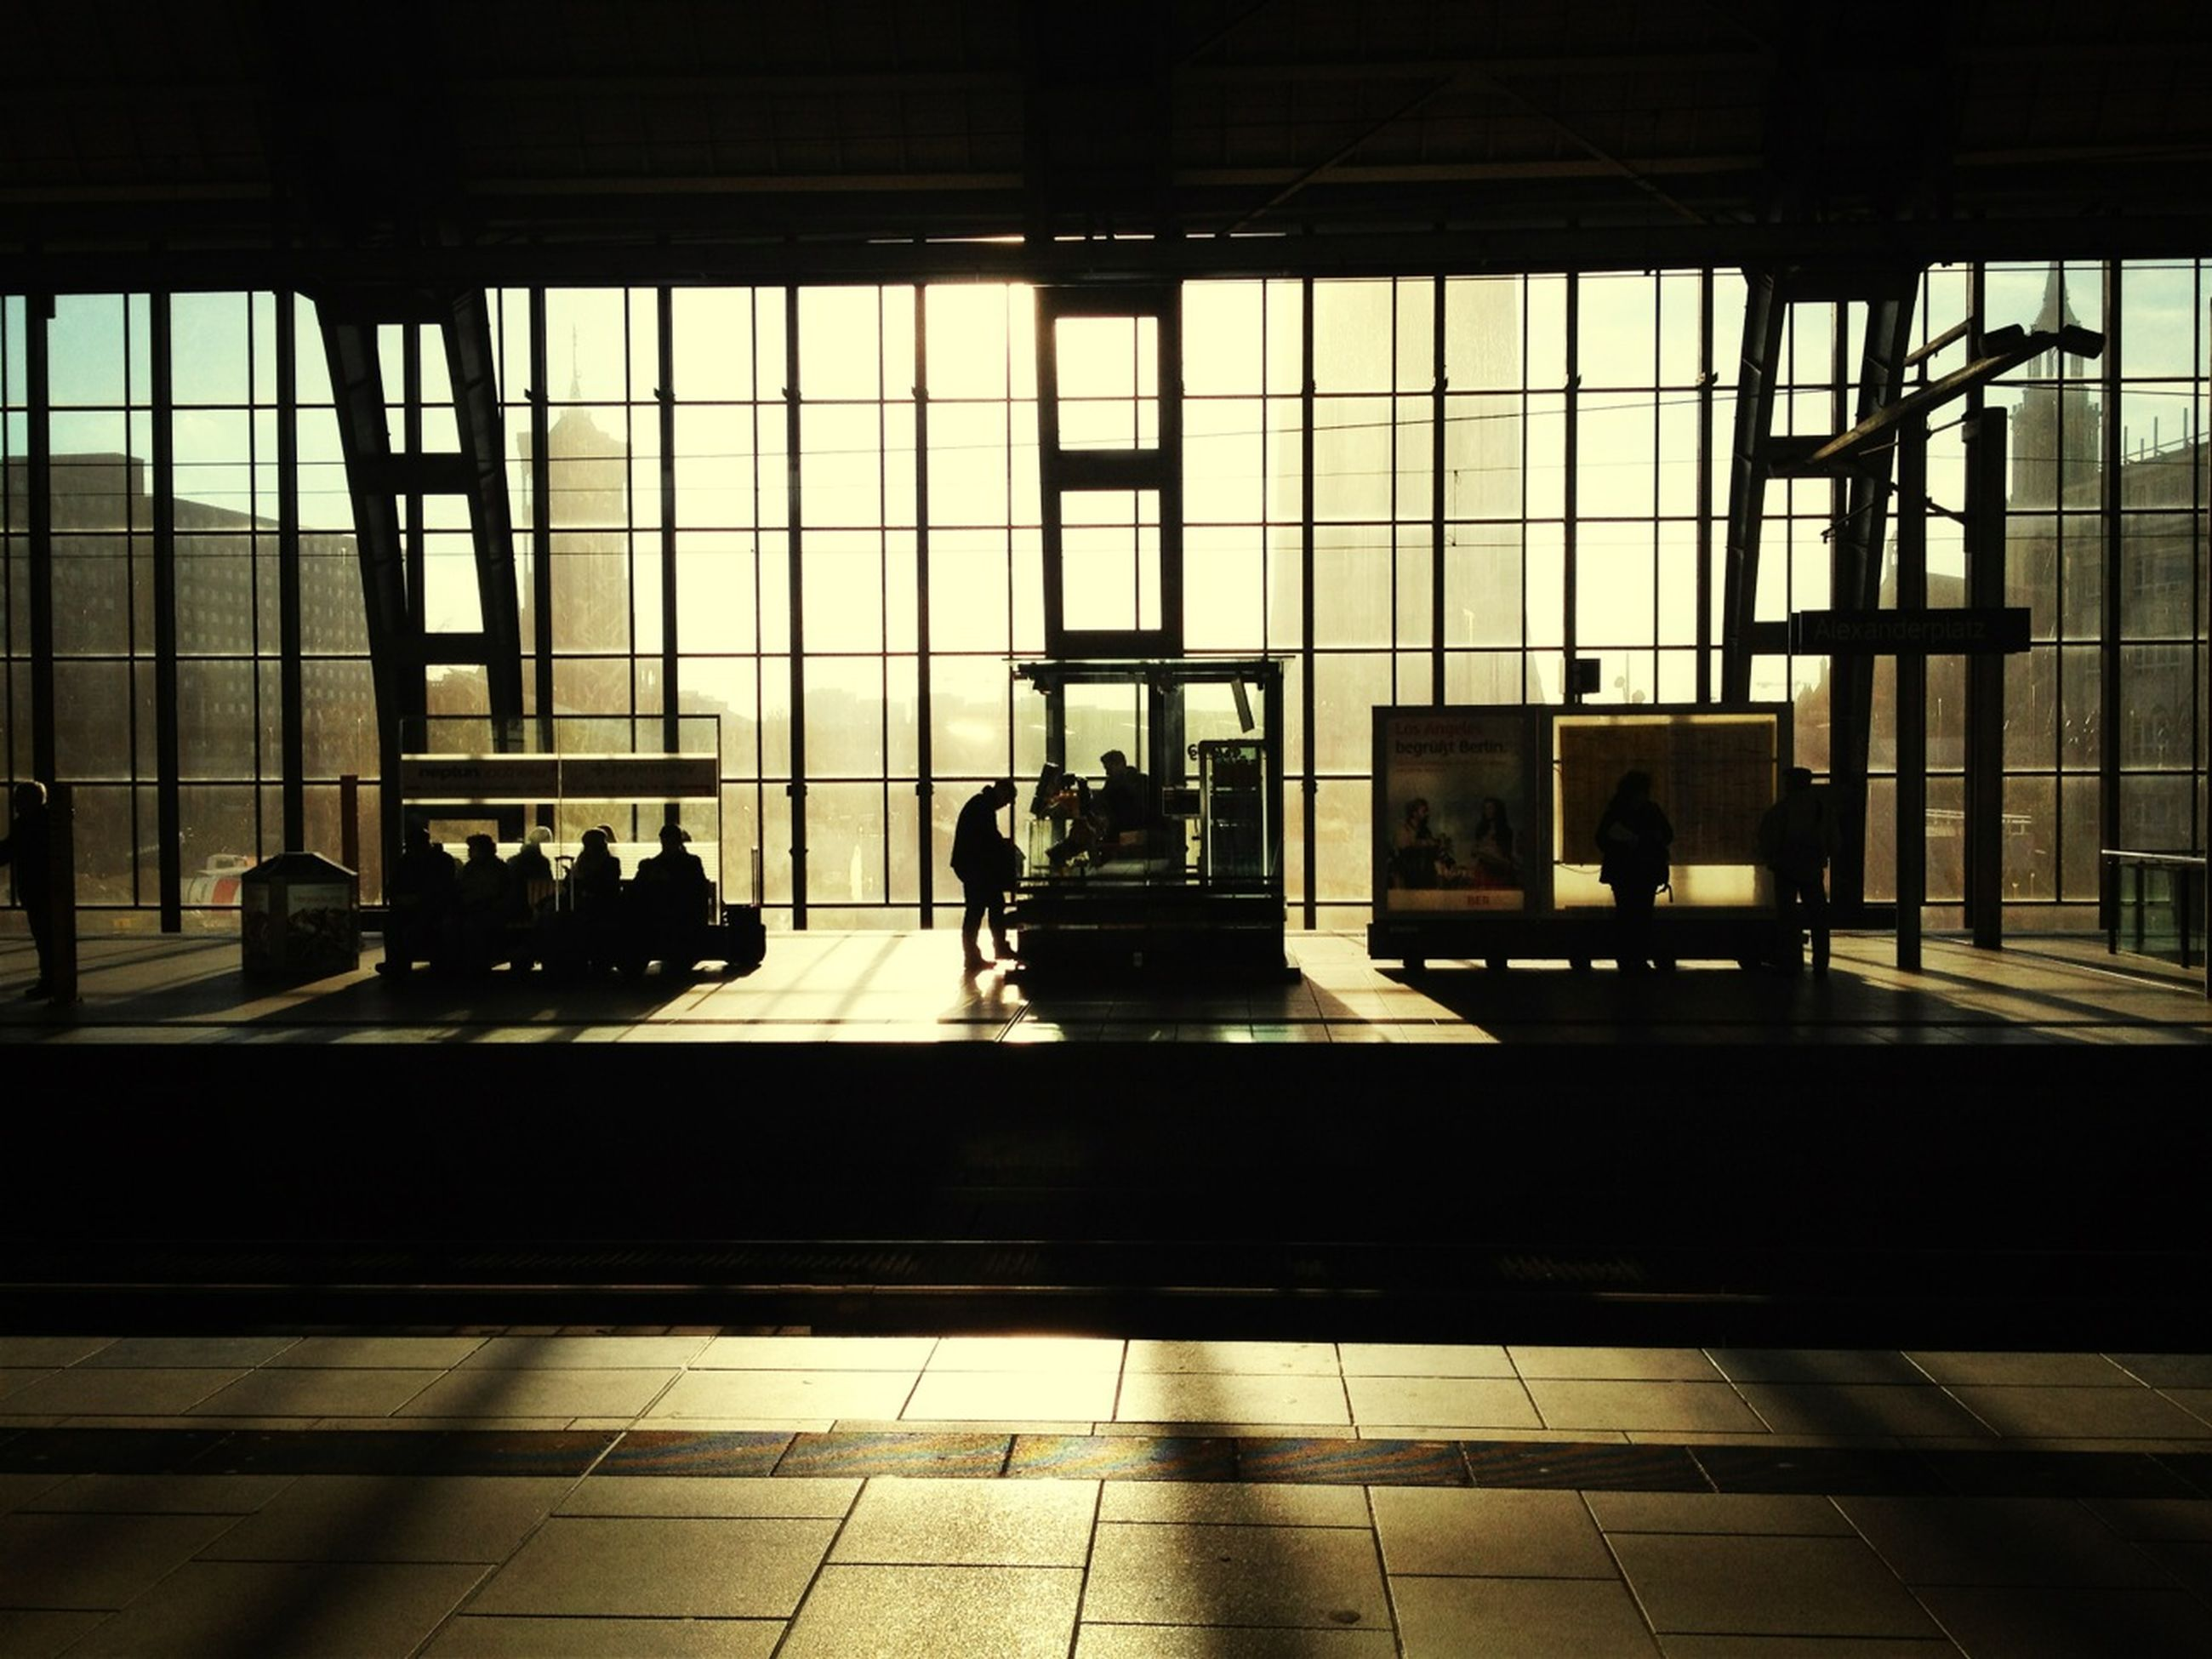 indoors, architecture, built structure, window, glass - material, transparent, men, silhouette, modern, building exterior, city, sunlight, person, glass, lifestyles, reflection, day, medium group of people, city life